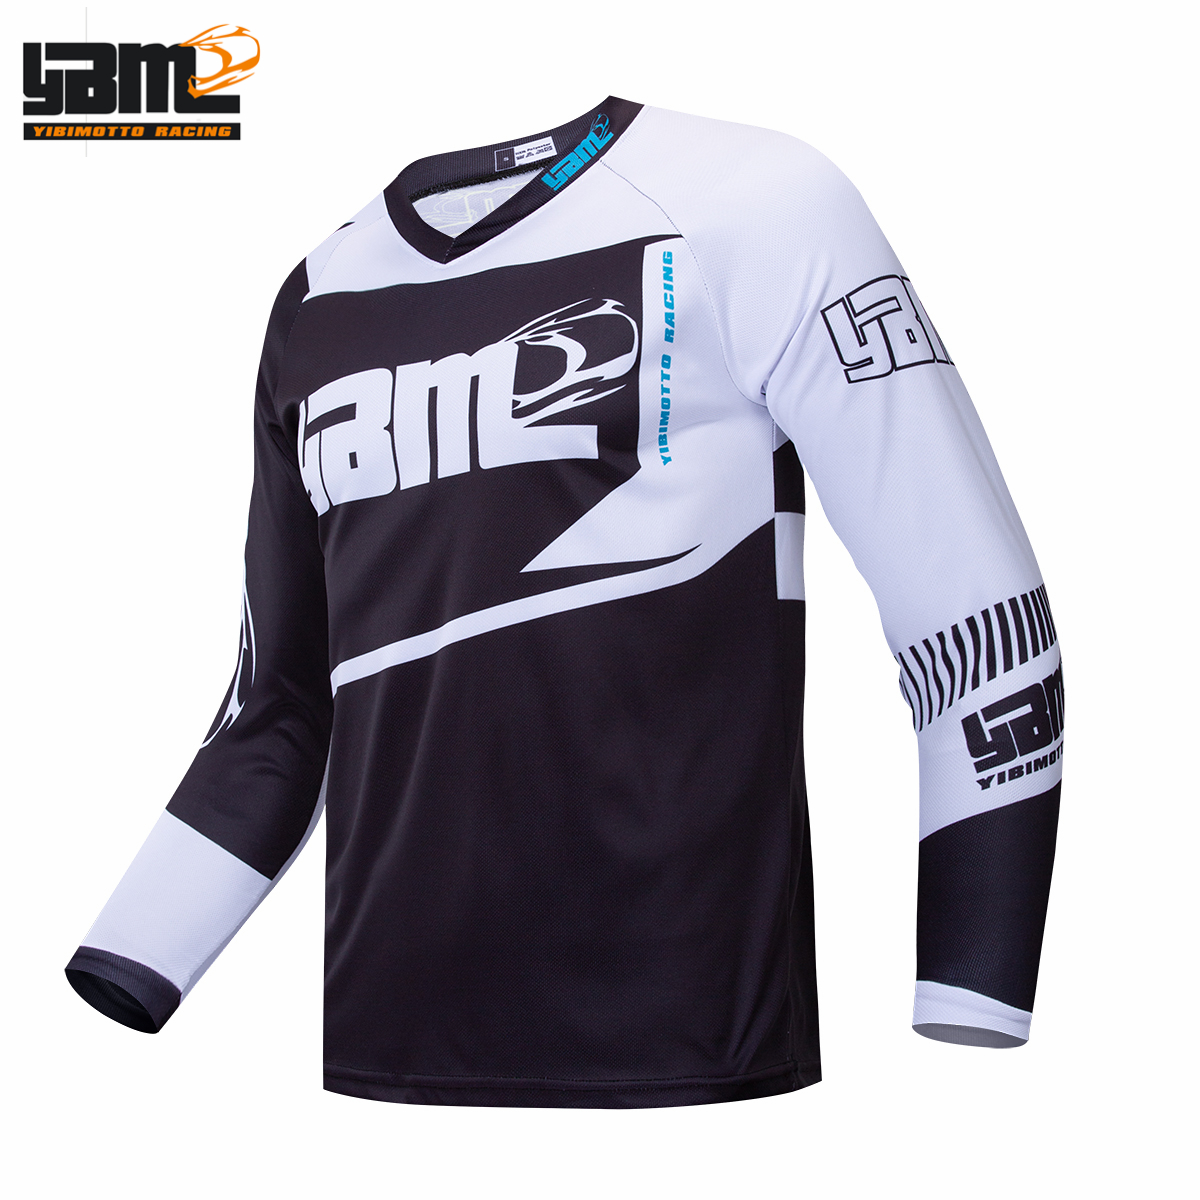 Moto Jersey Long-Sleeve 7-Seven Dh-Shirt Motorcycle-Clothing Downhill-Camiseta Mountain-Bike